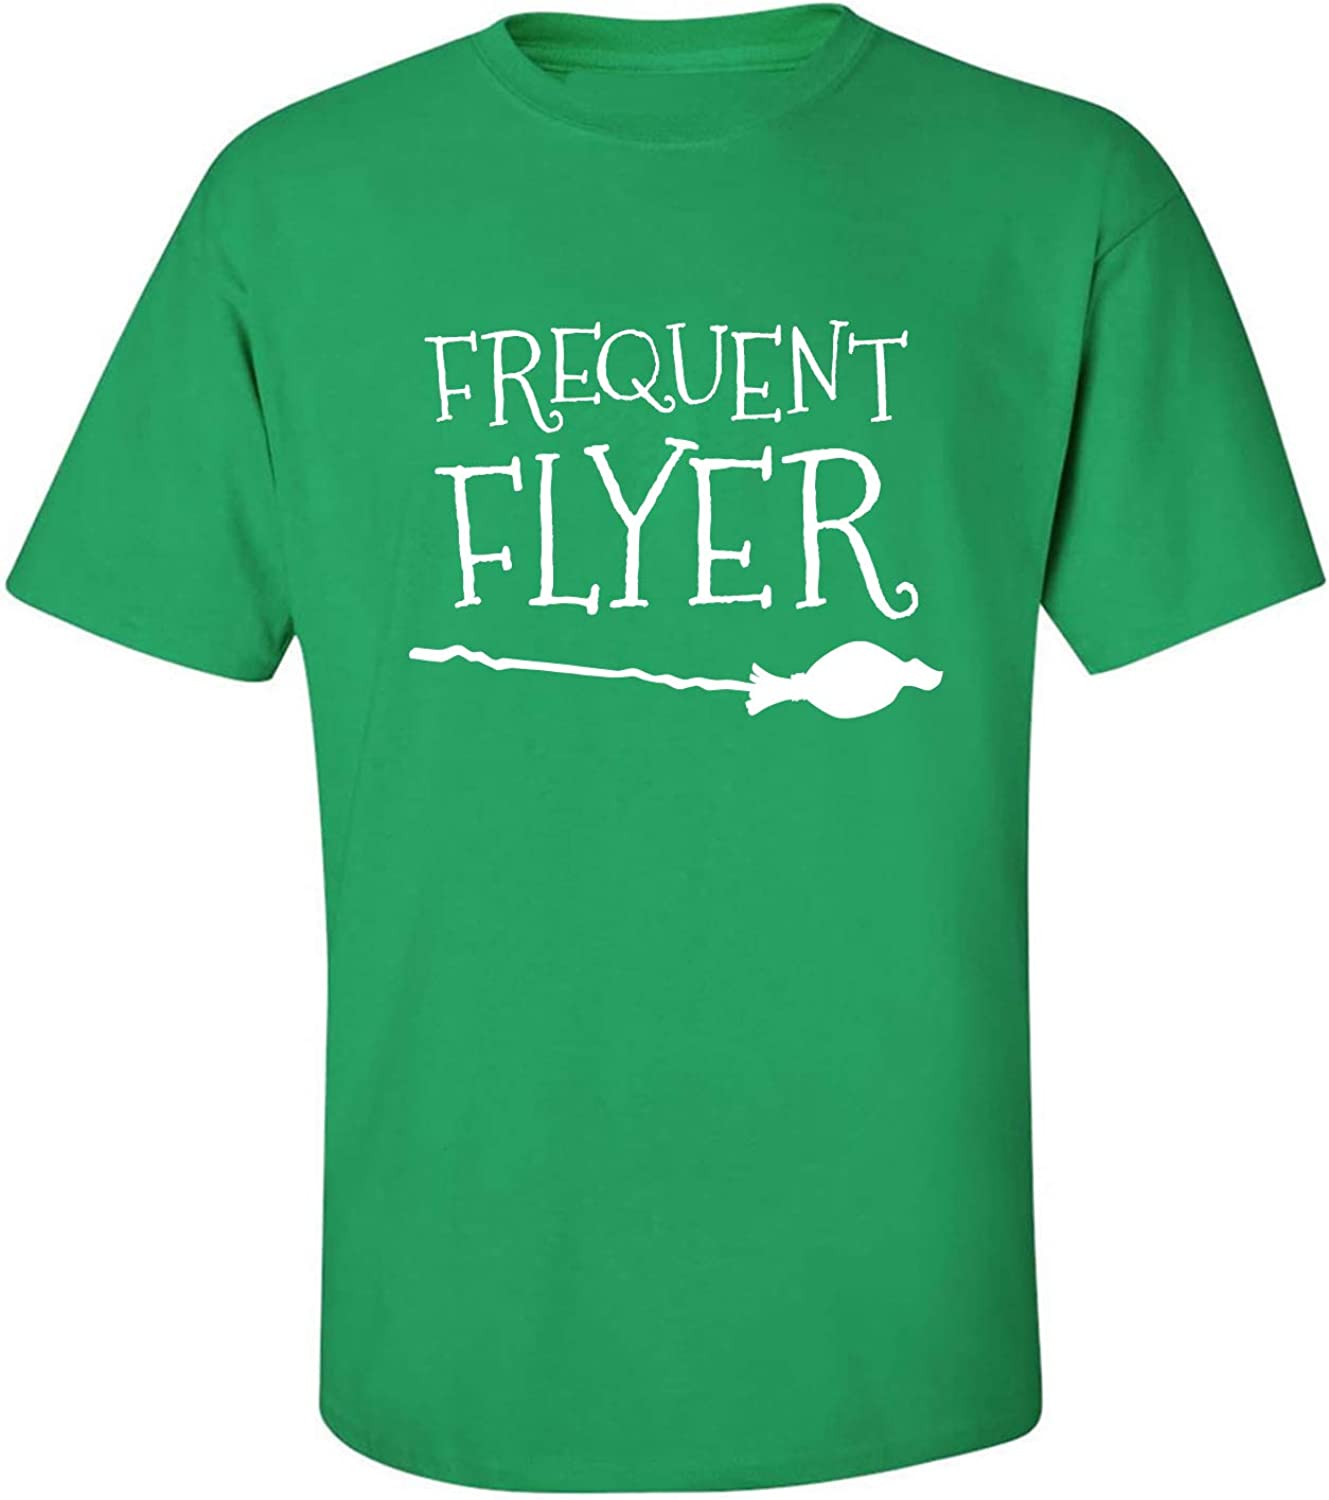 Frequent Flyer Adult T-Shirt in Kelly Green - XXXXX-Large